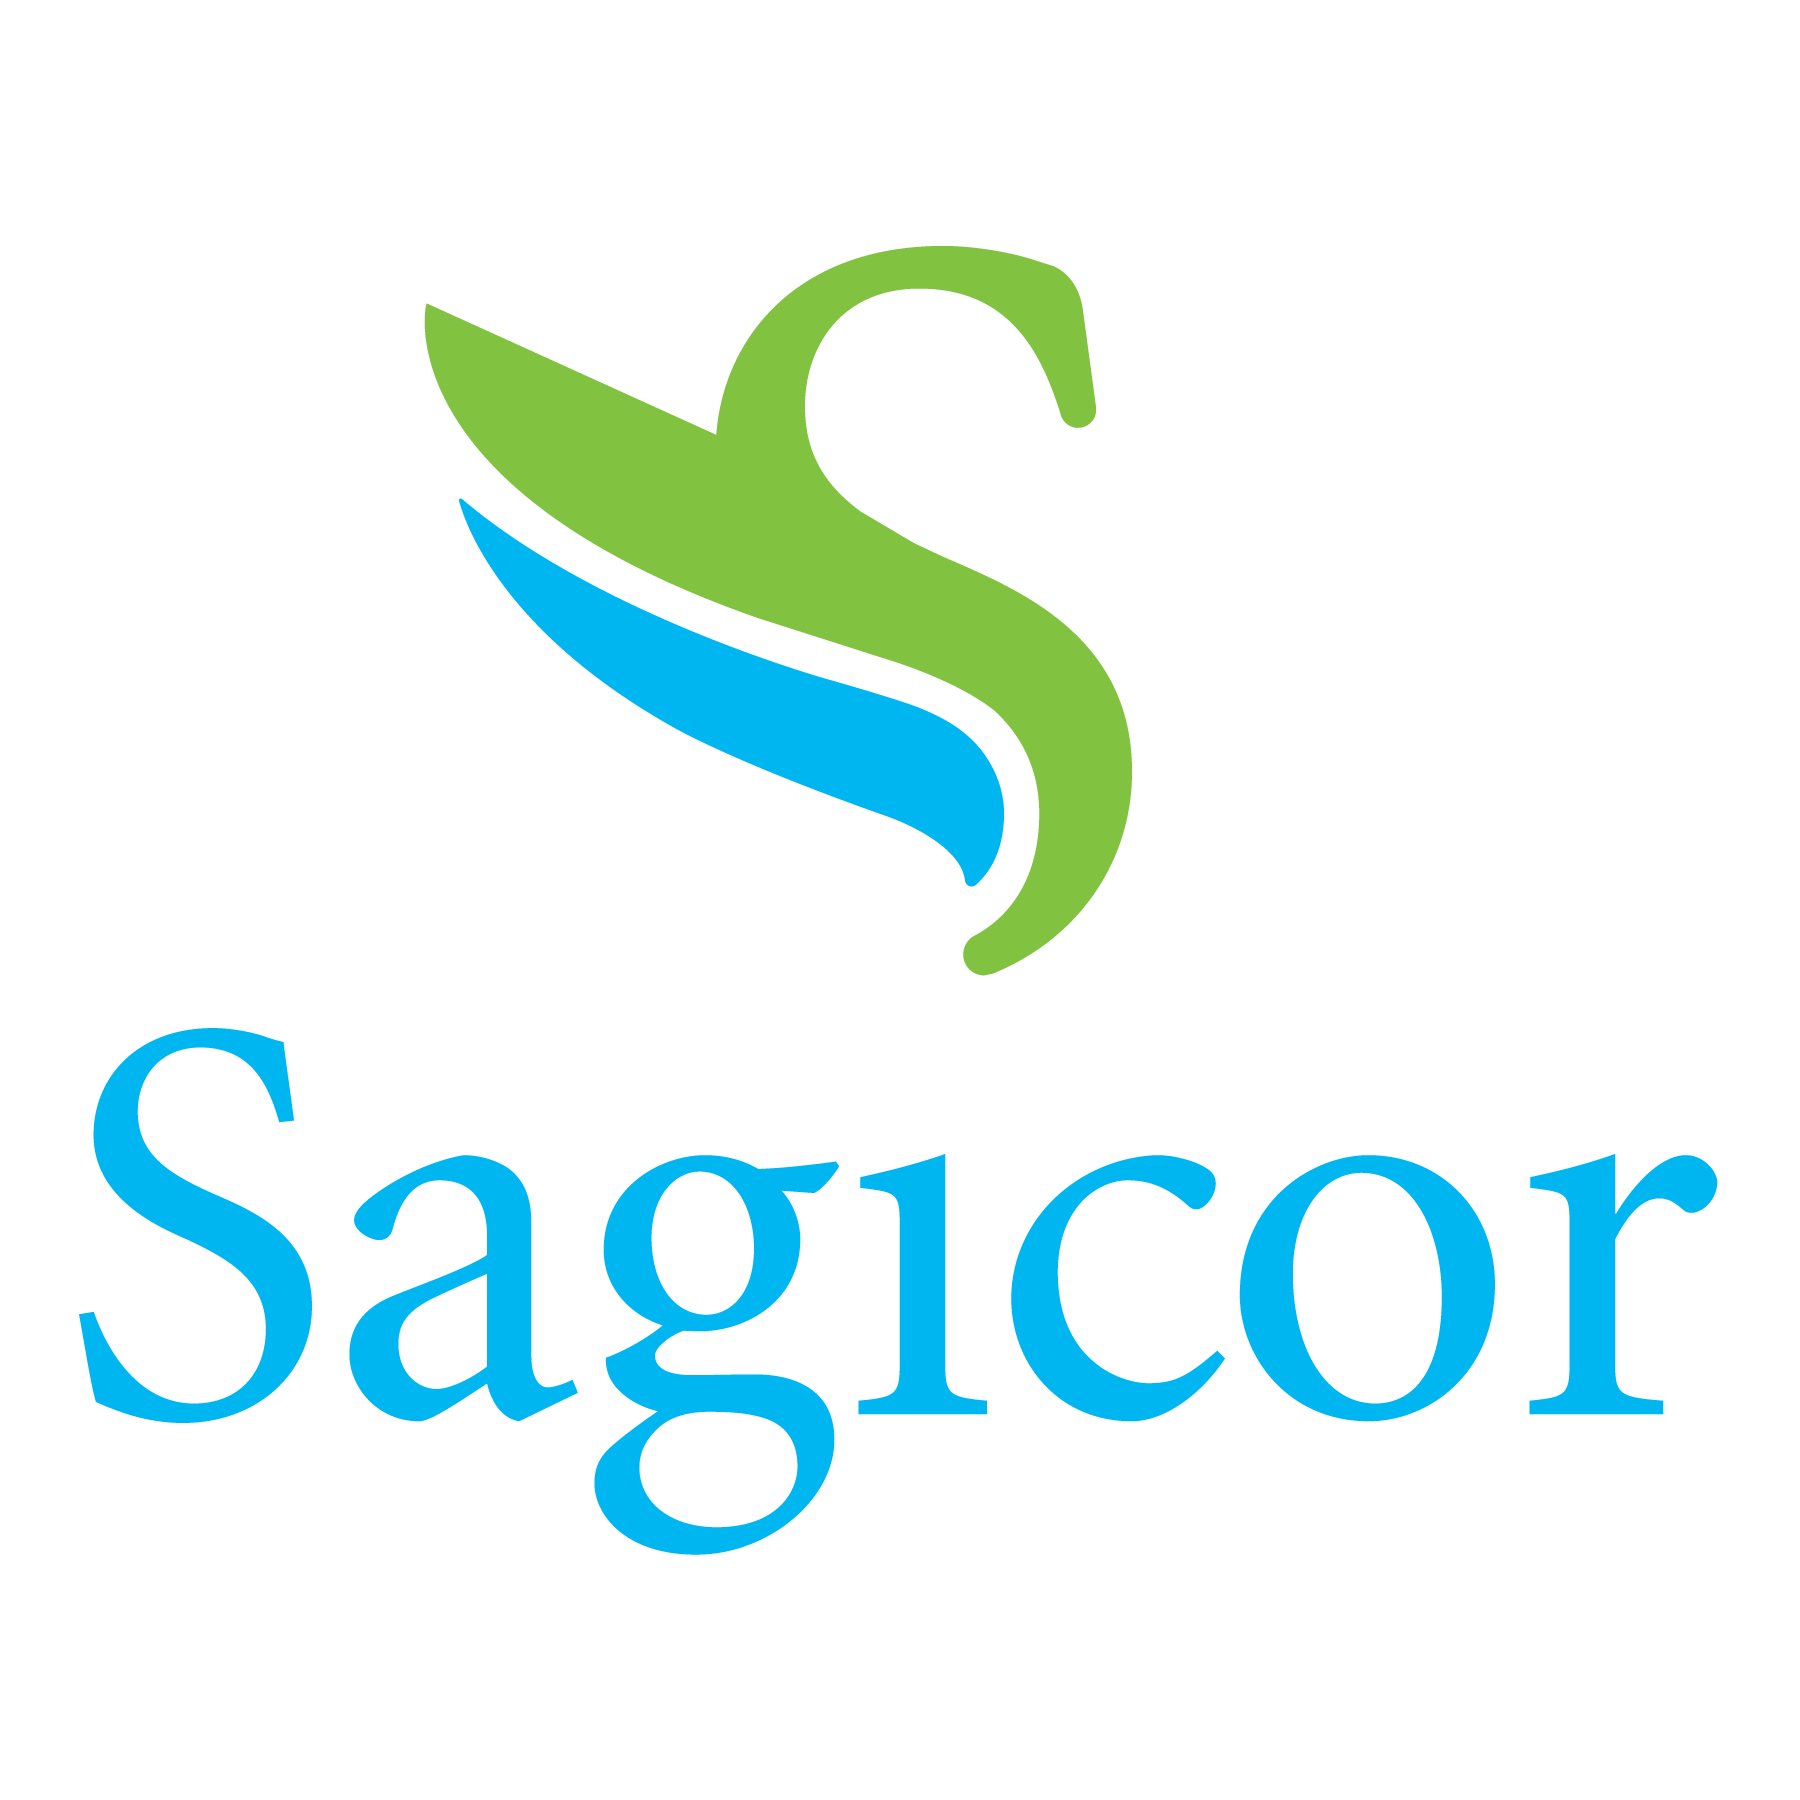 Sagicor Group Jamaica Ltd Conference Sponsor Ad